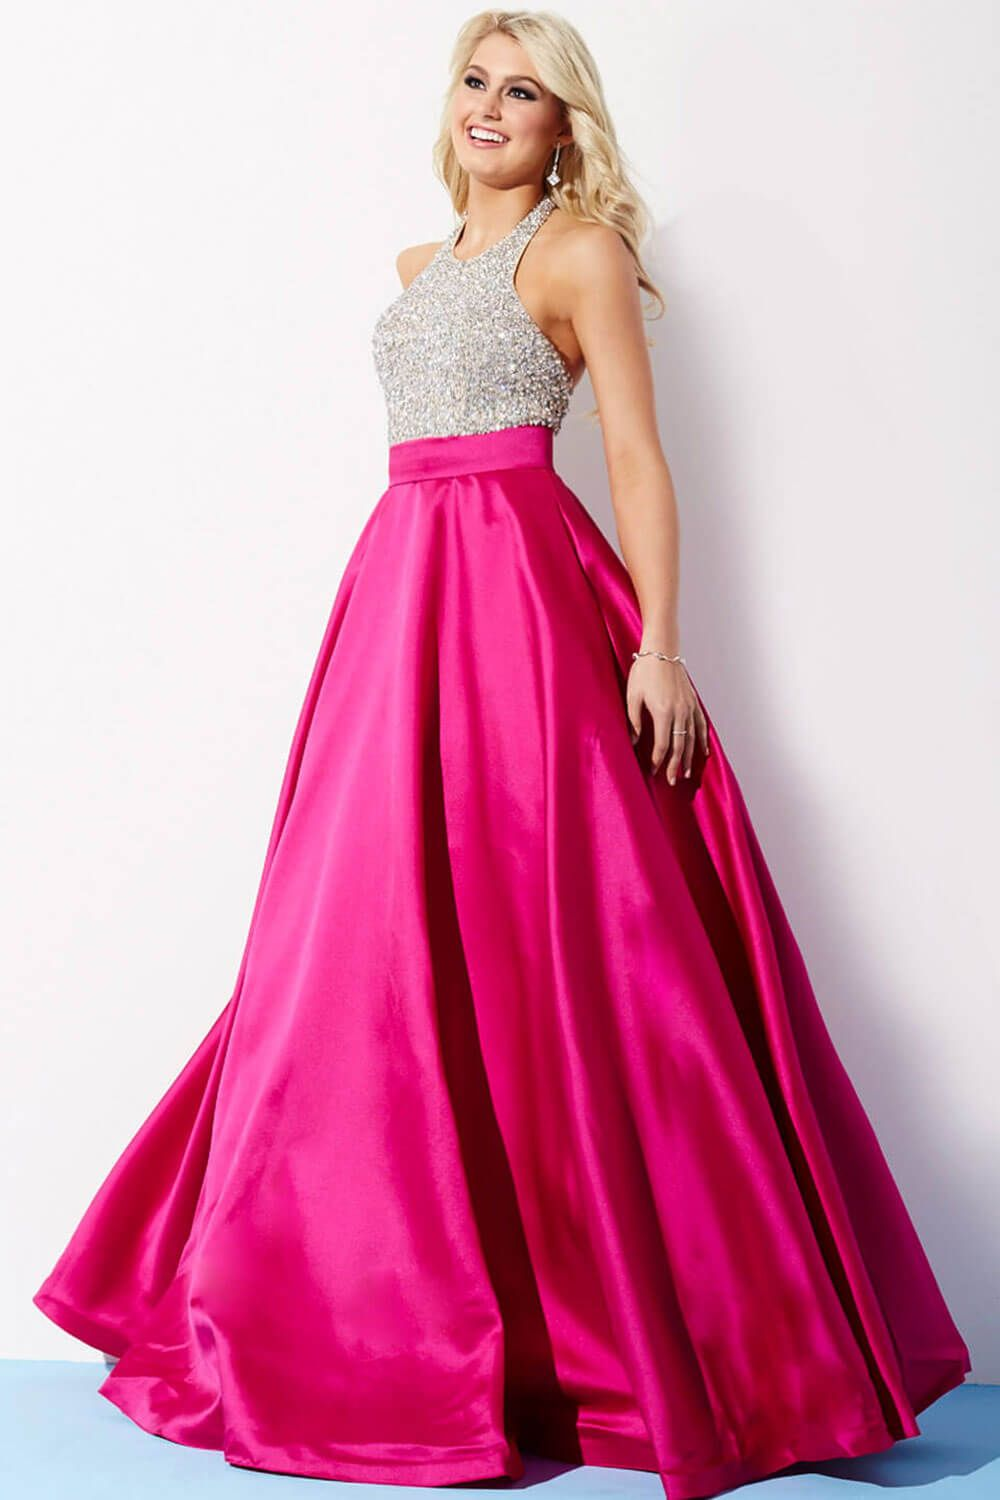 Royal and Silver Prom Dress by Jovani- This ballgown is perfect for ...